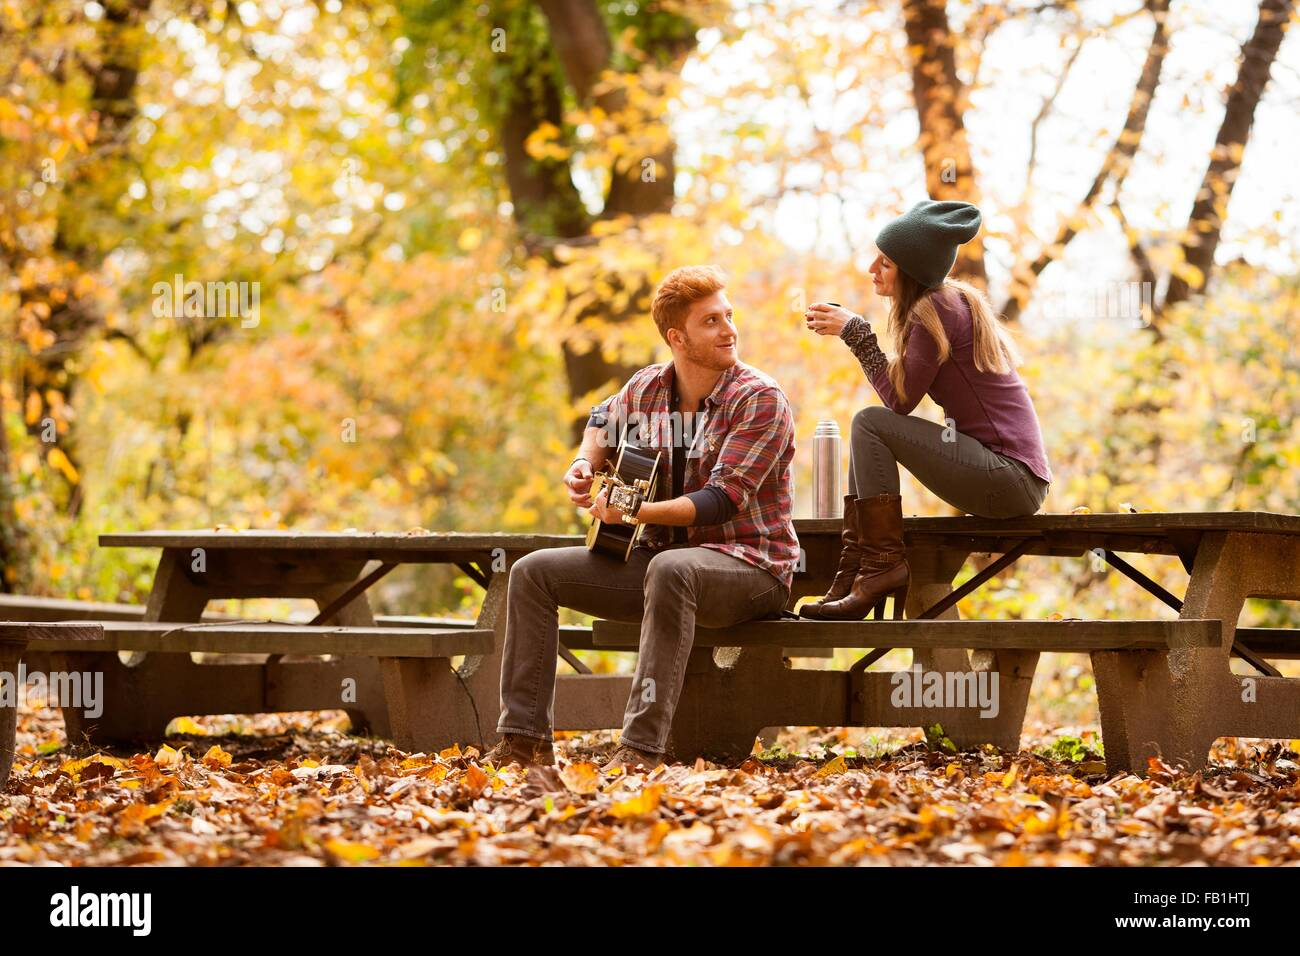 Young couple playing guitar on picnic benches in autumn forest - Stock Image